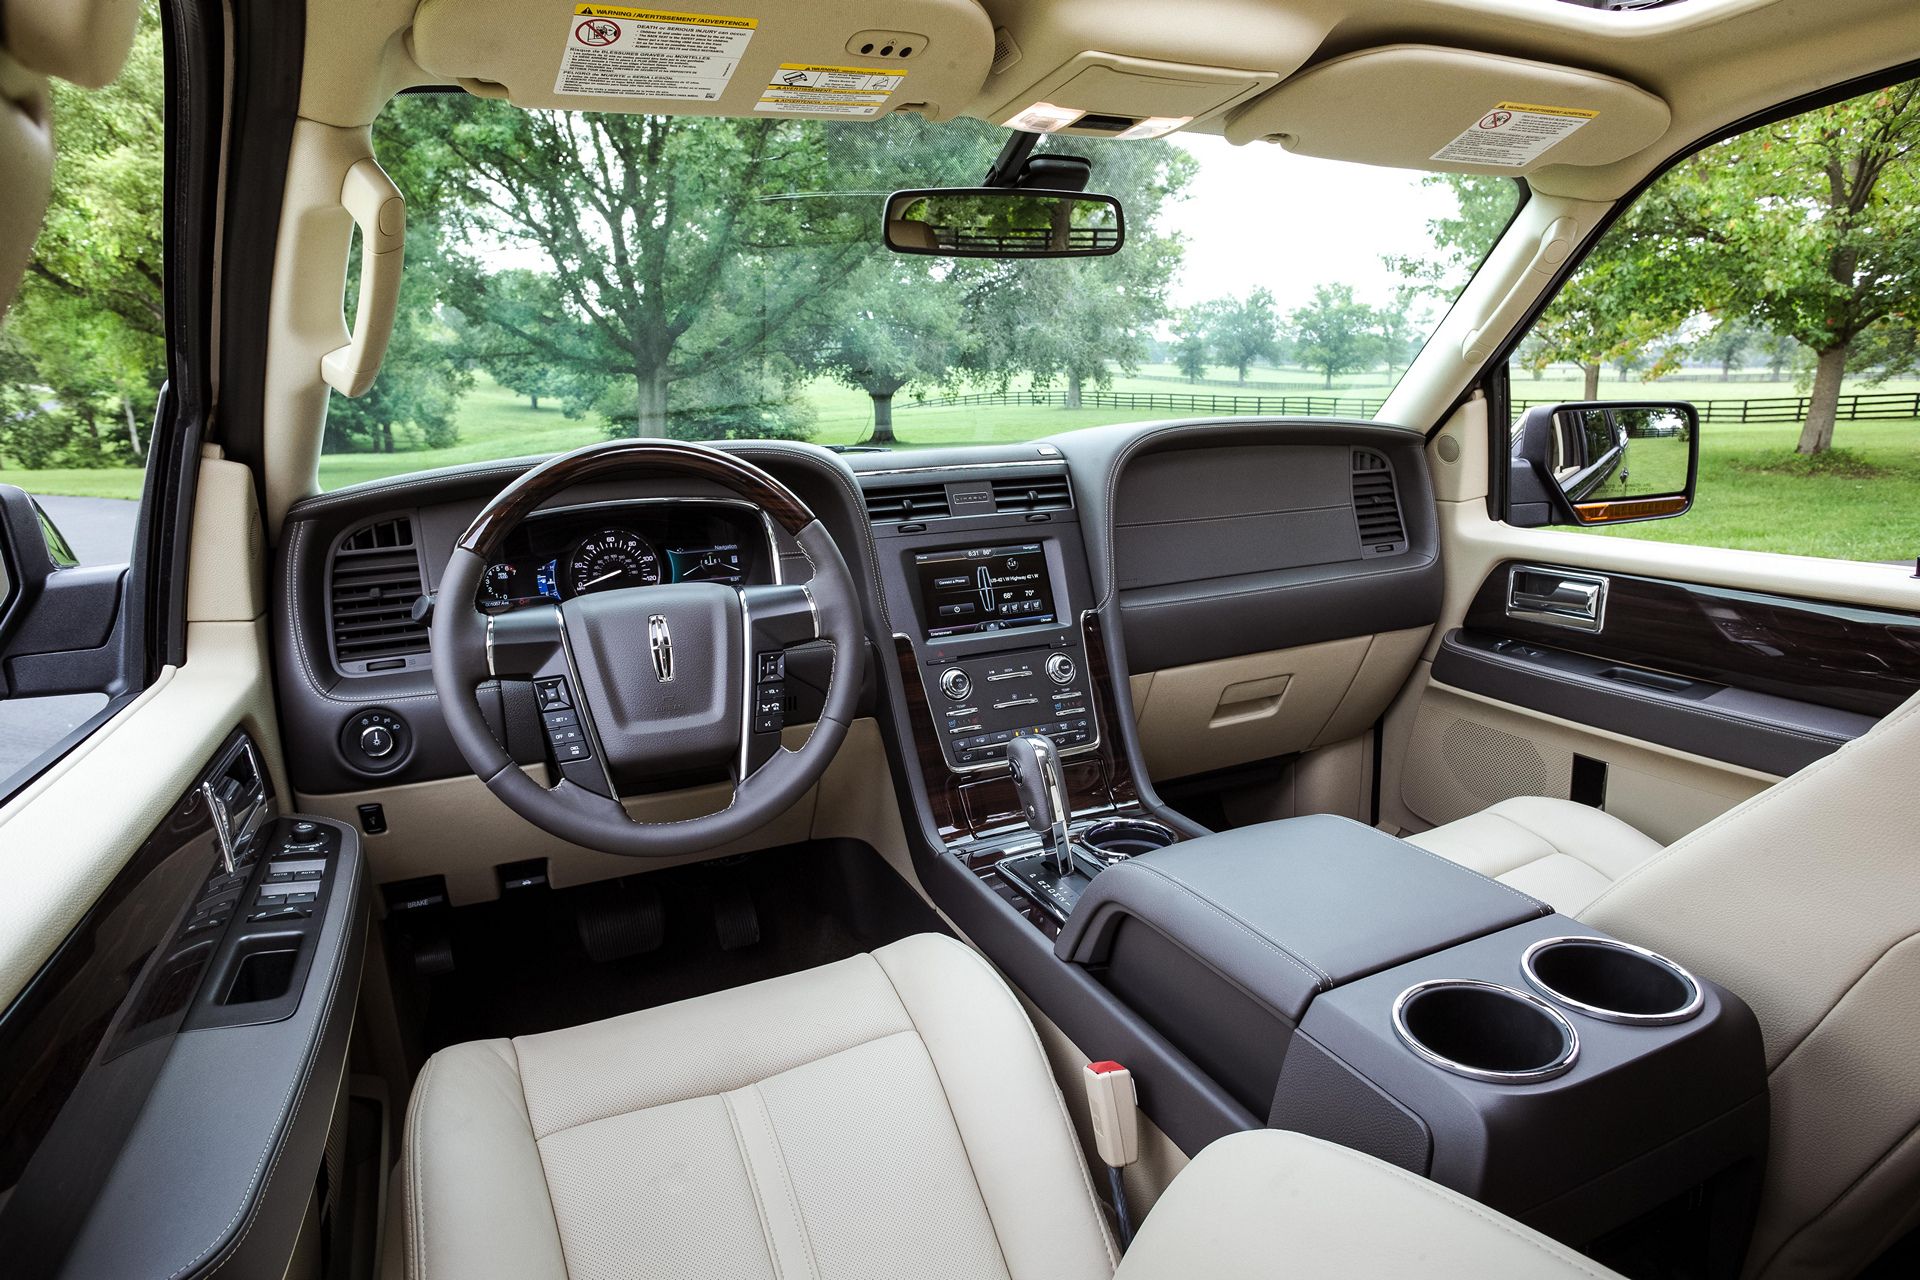 2002 Lincoln Navigator Interior Photos